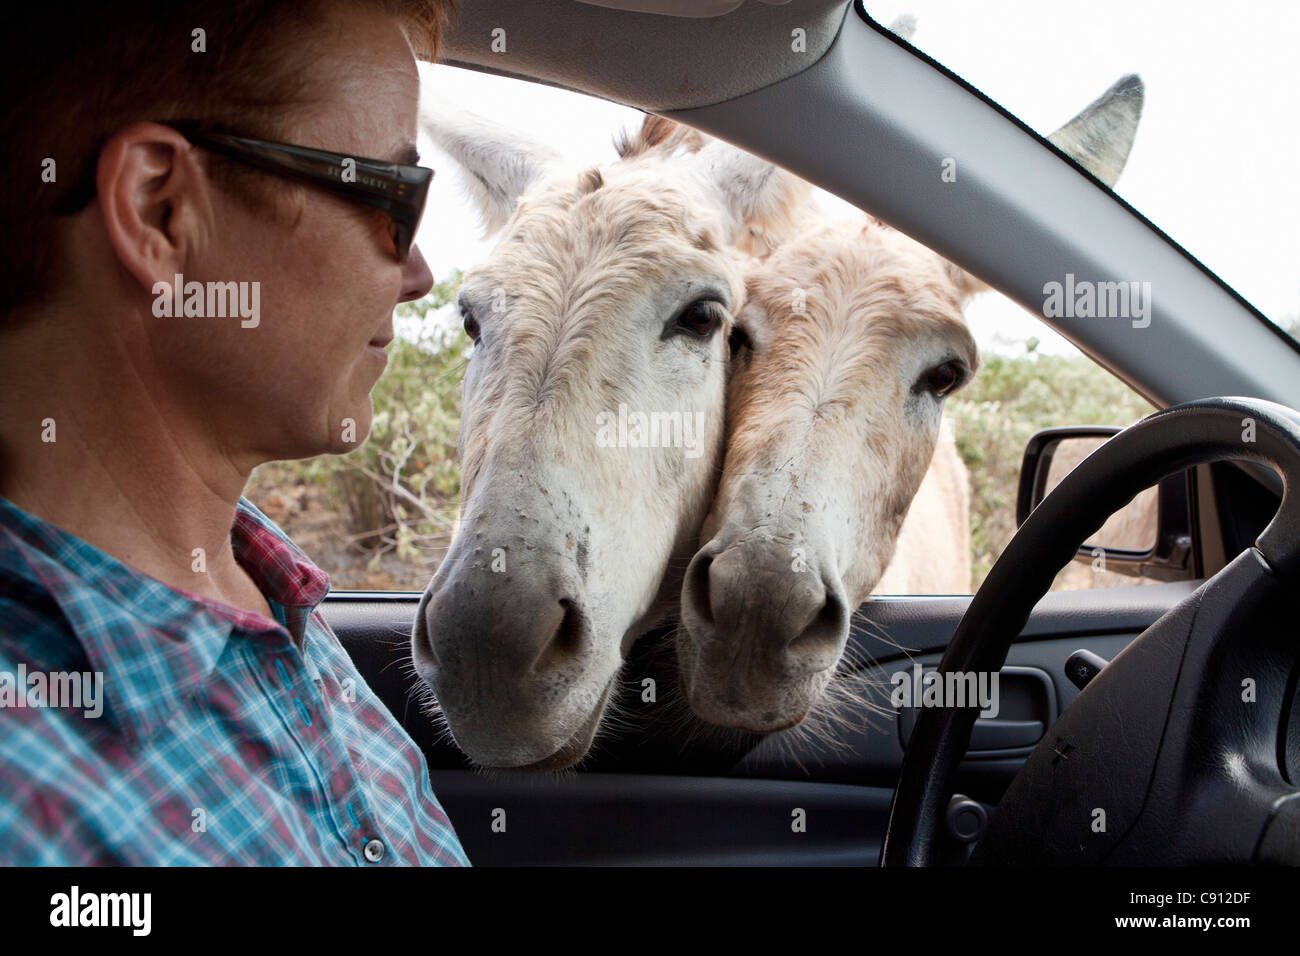 The Netherlands, Bonaire Island, Dutch Caribbean, Kralendijk, Donkey sanctuary. Stock Photo